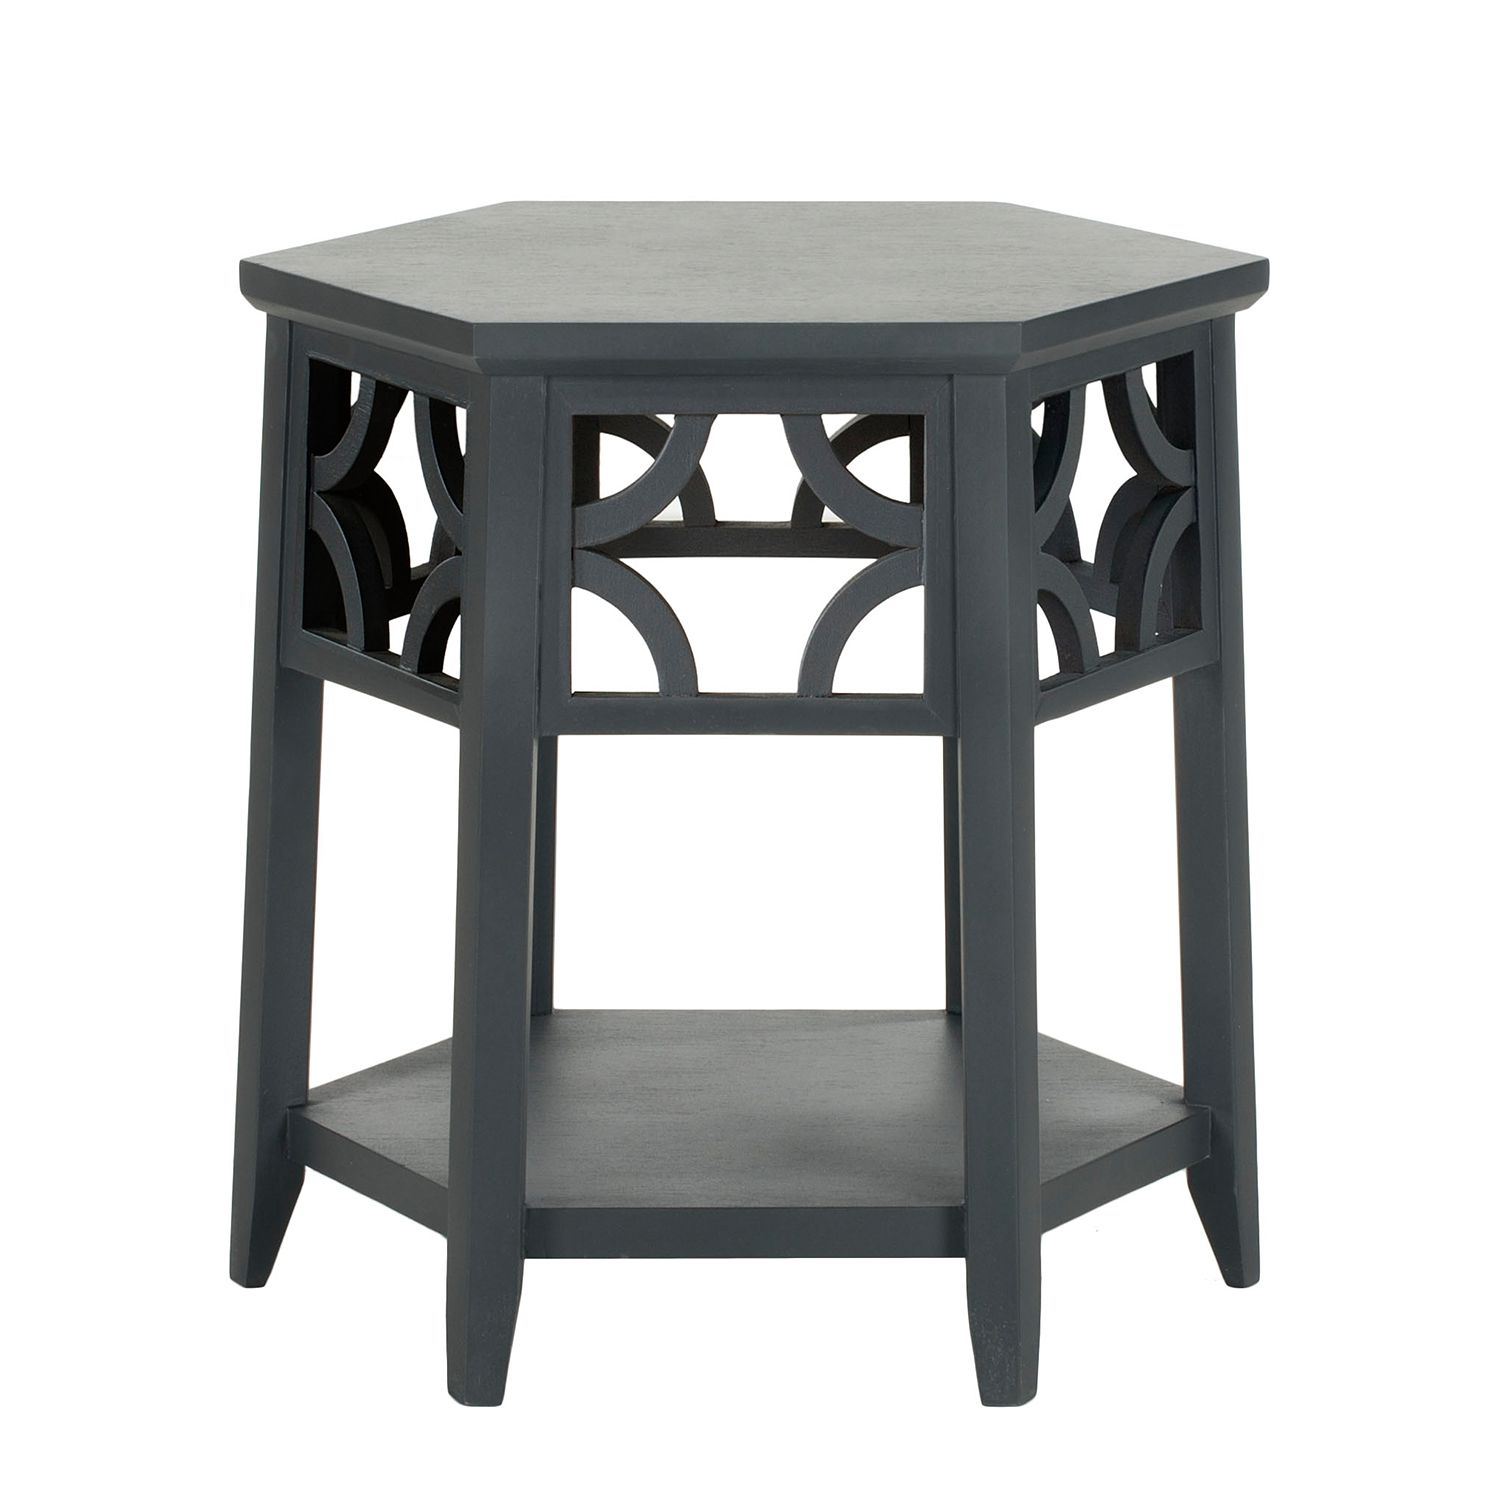 Table d'appoint Darima